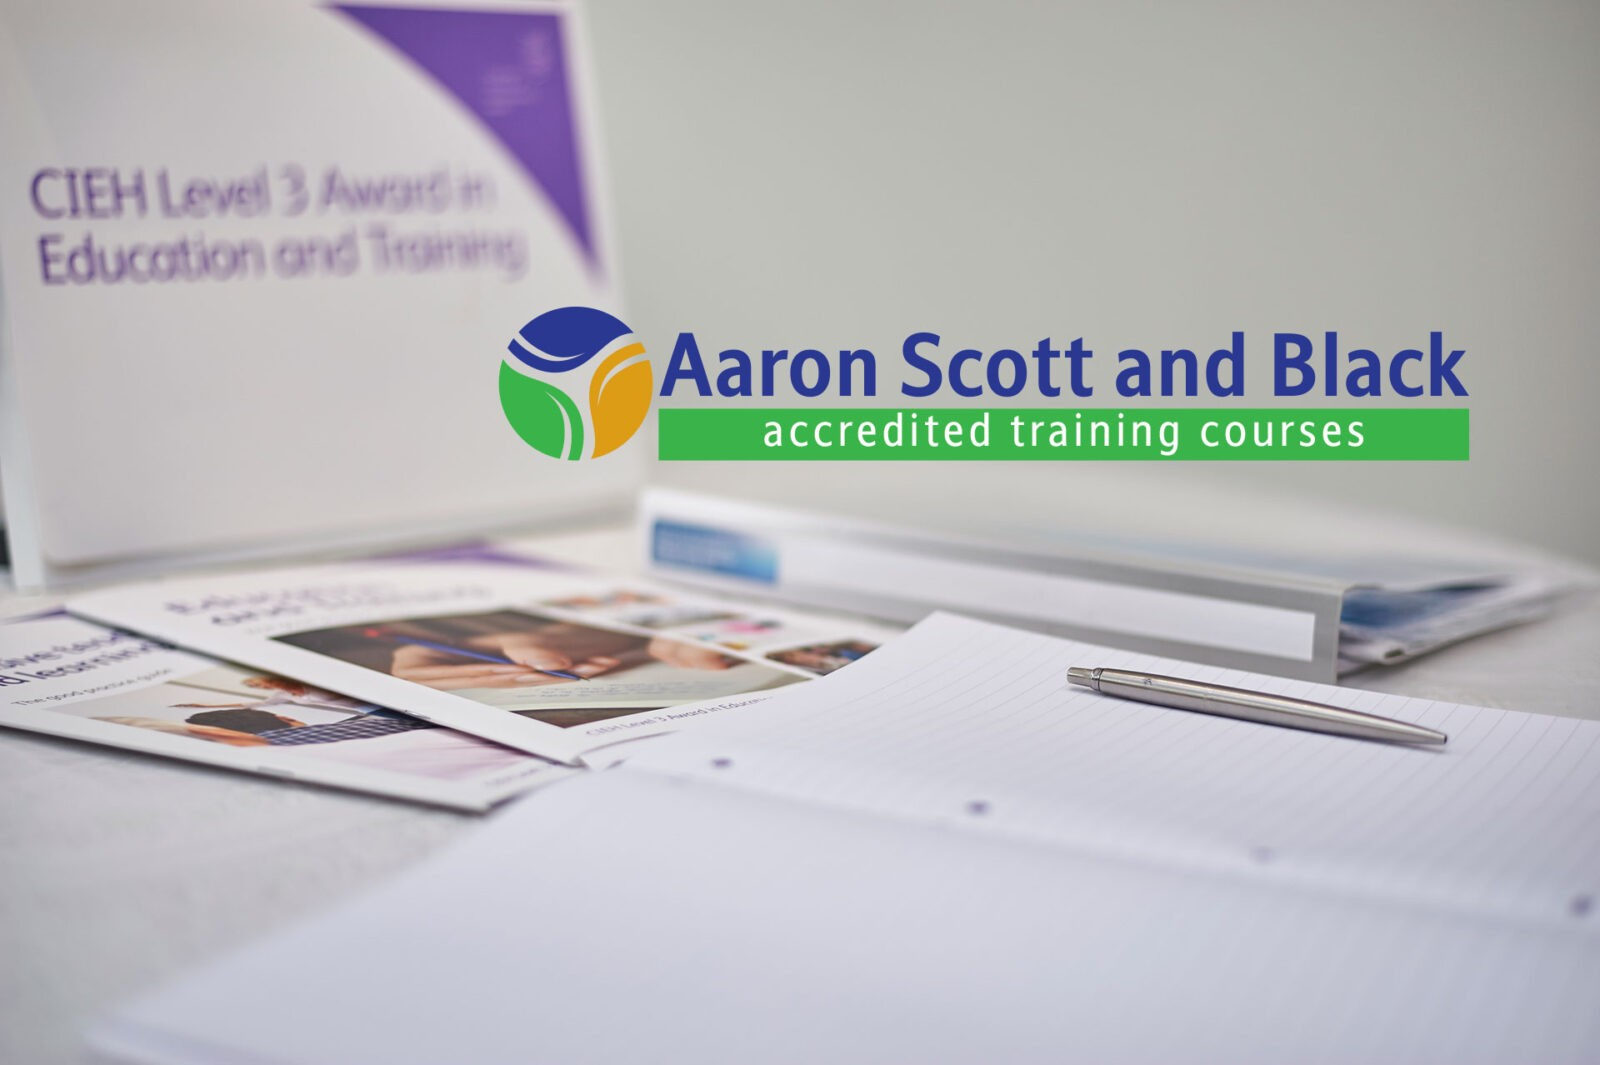 about aaron scott and black